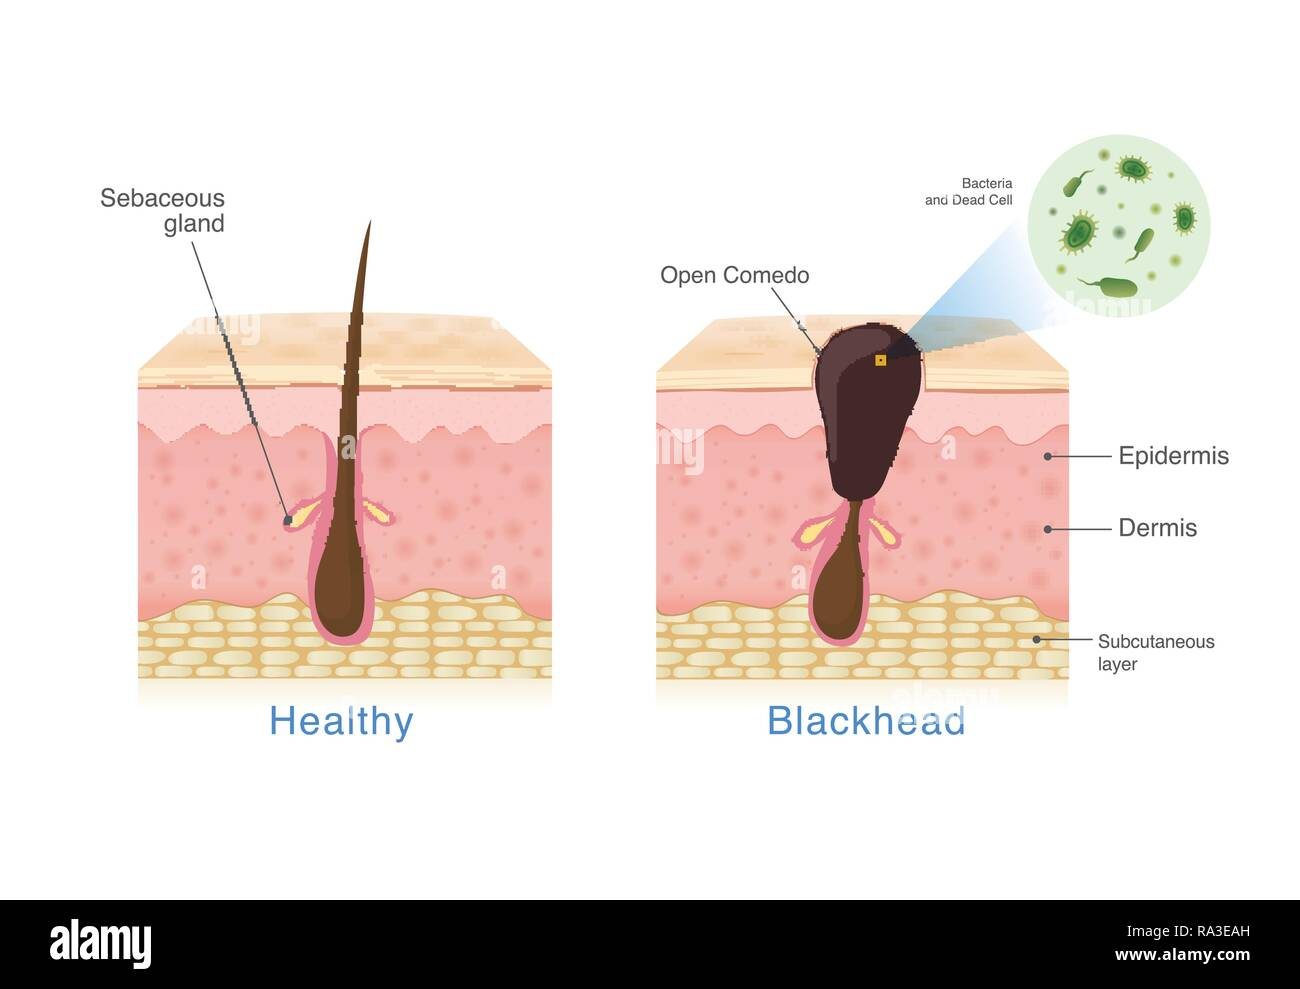 bacteria in blackhead with human skin layer structure and healthy skin